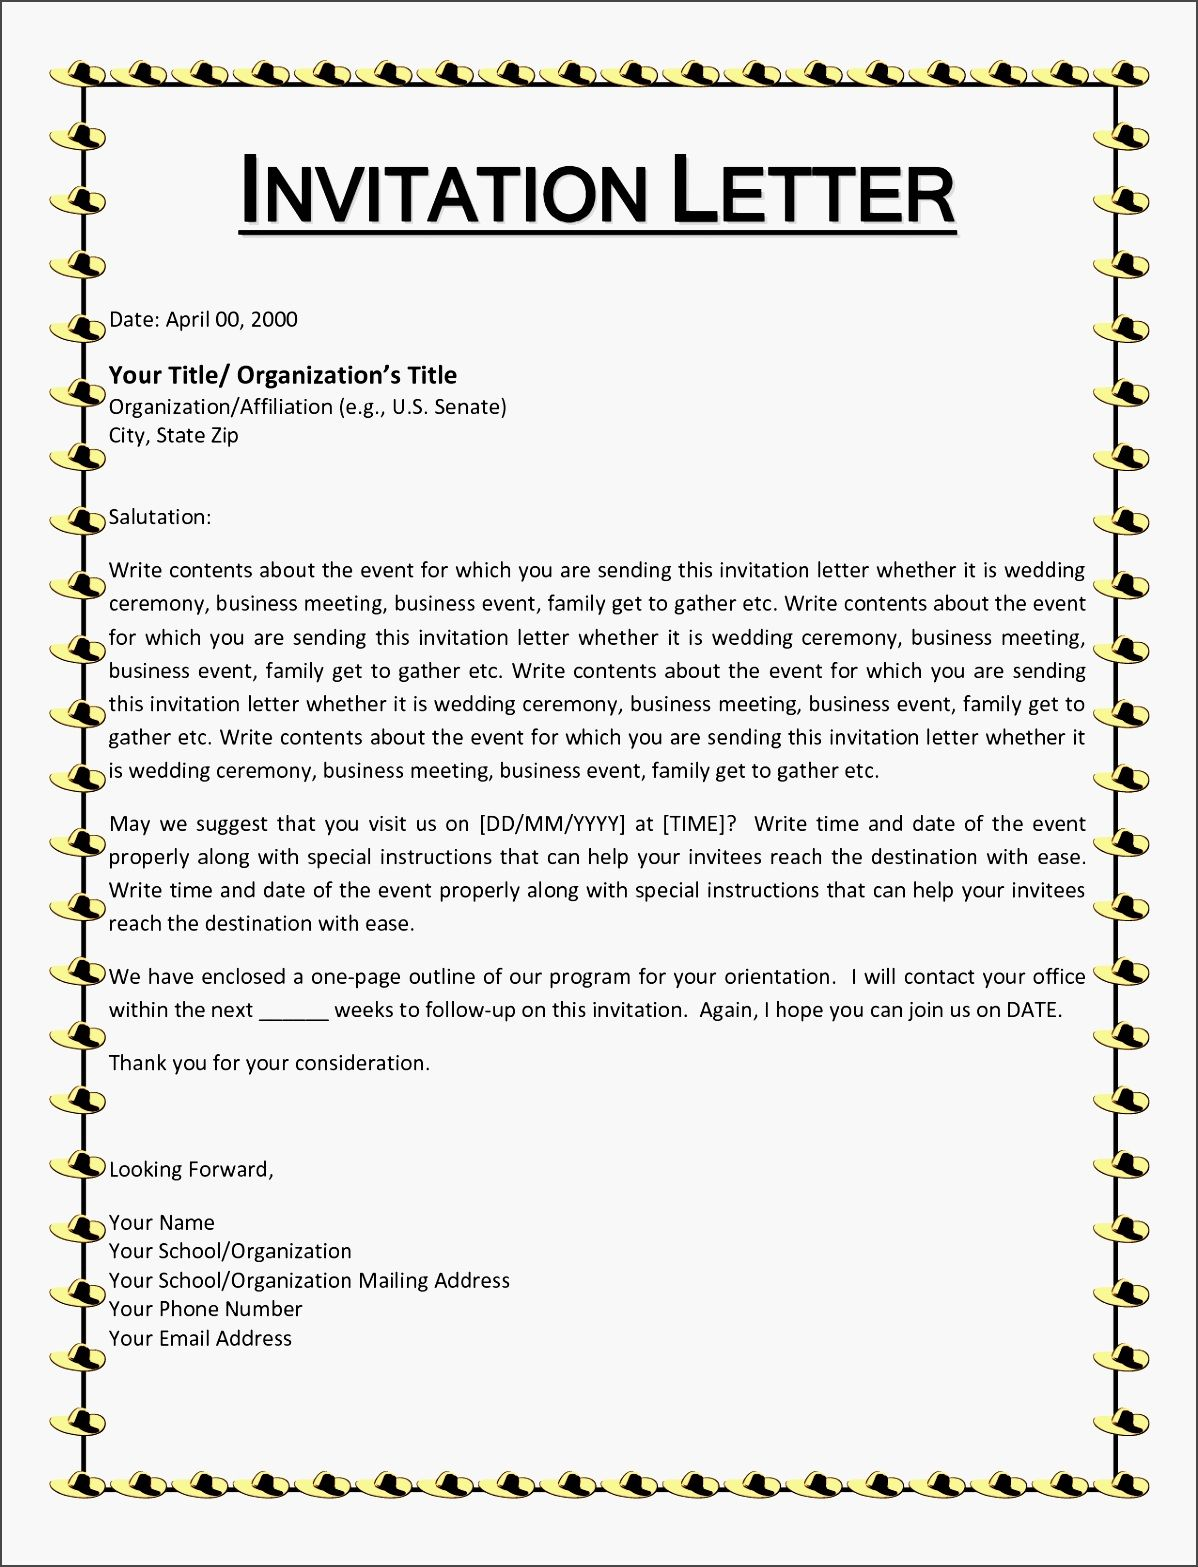 invitation letter informal saevk beautiful wedding With free sample of wedding invitation letter